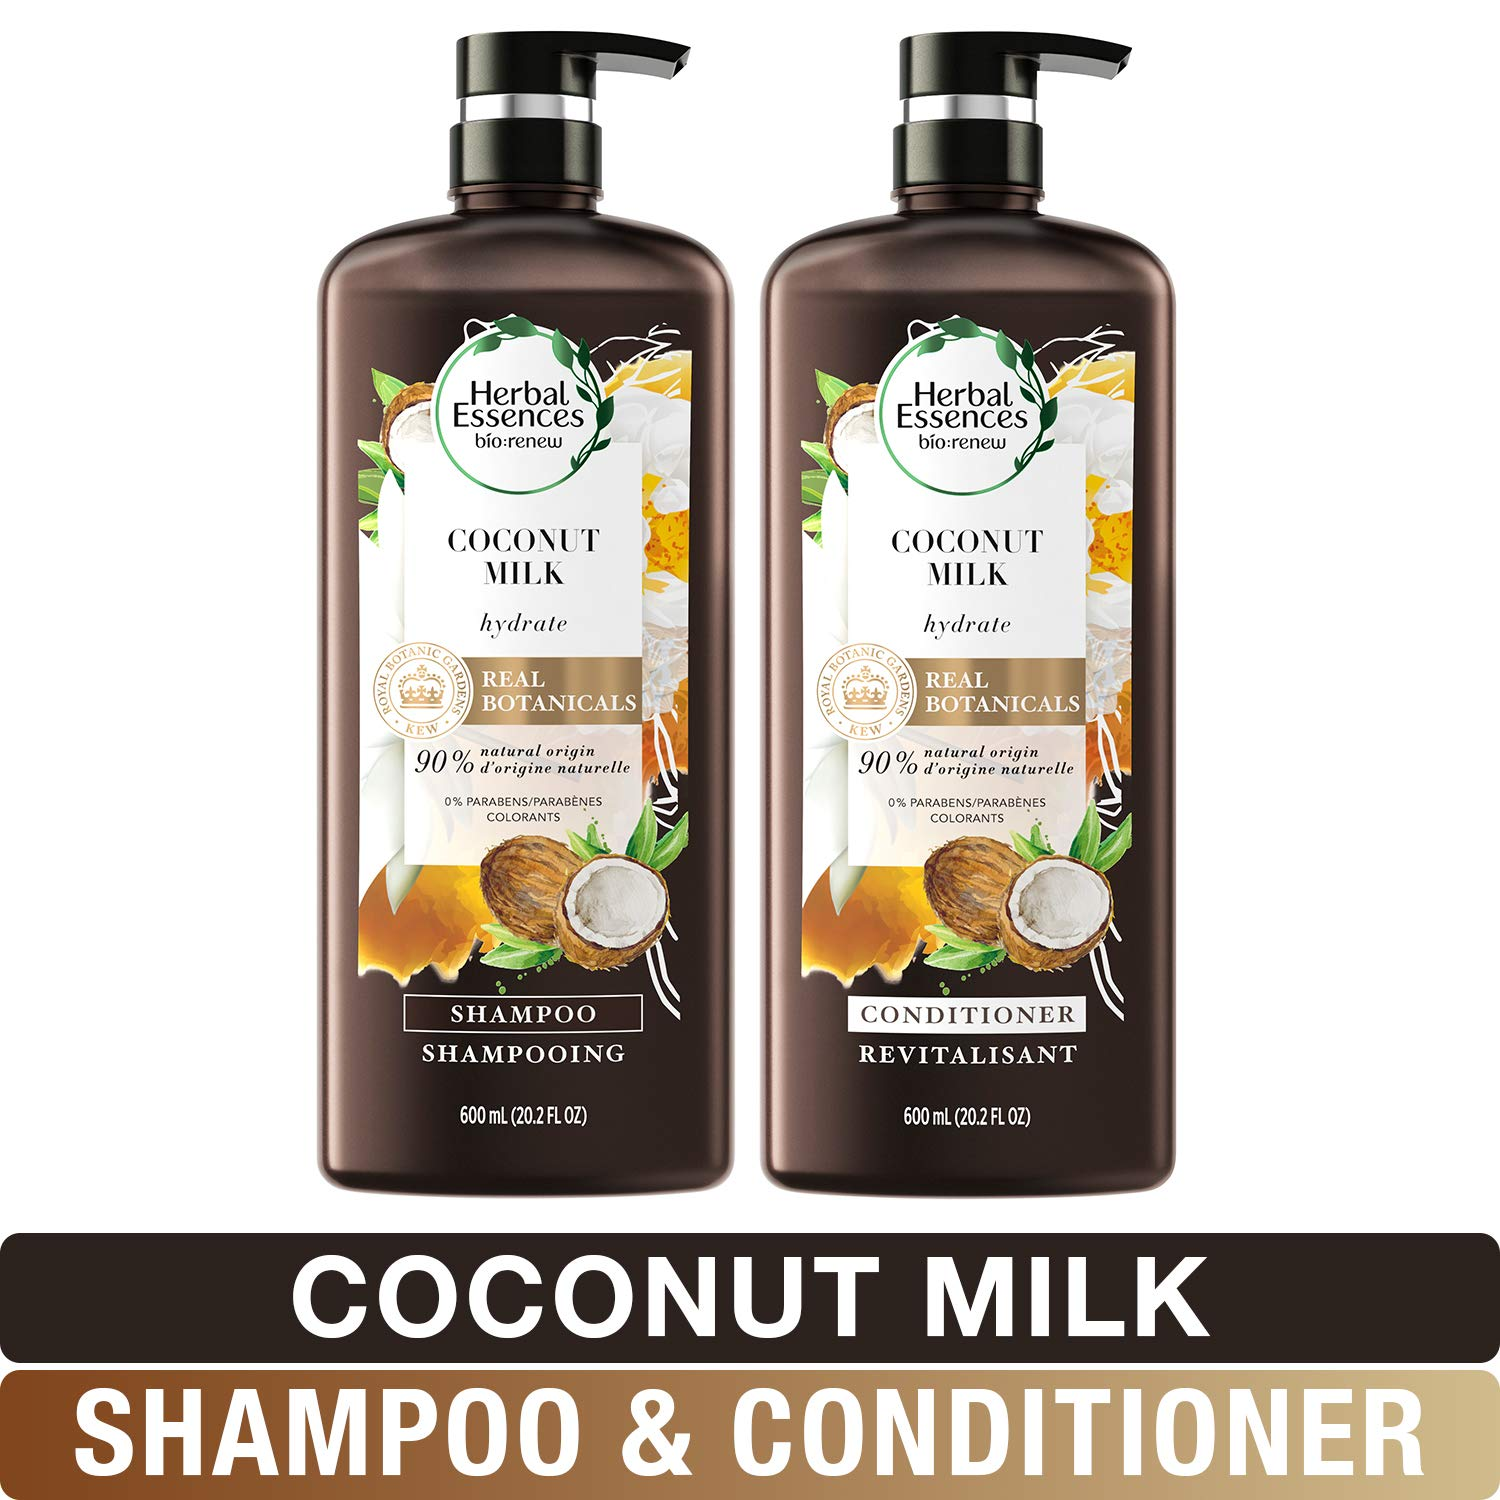 Herbal Essences, Shampoo and Conditioner Kit With Natural Source Ingredients, Color Safe, BioRenew Coconut Milk, 20.2 fl oz, Kit by Herbal Essences